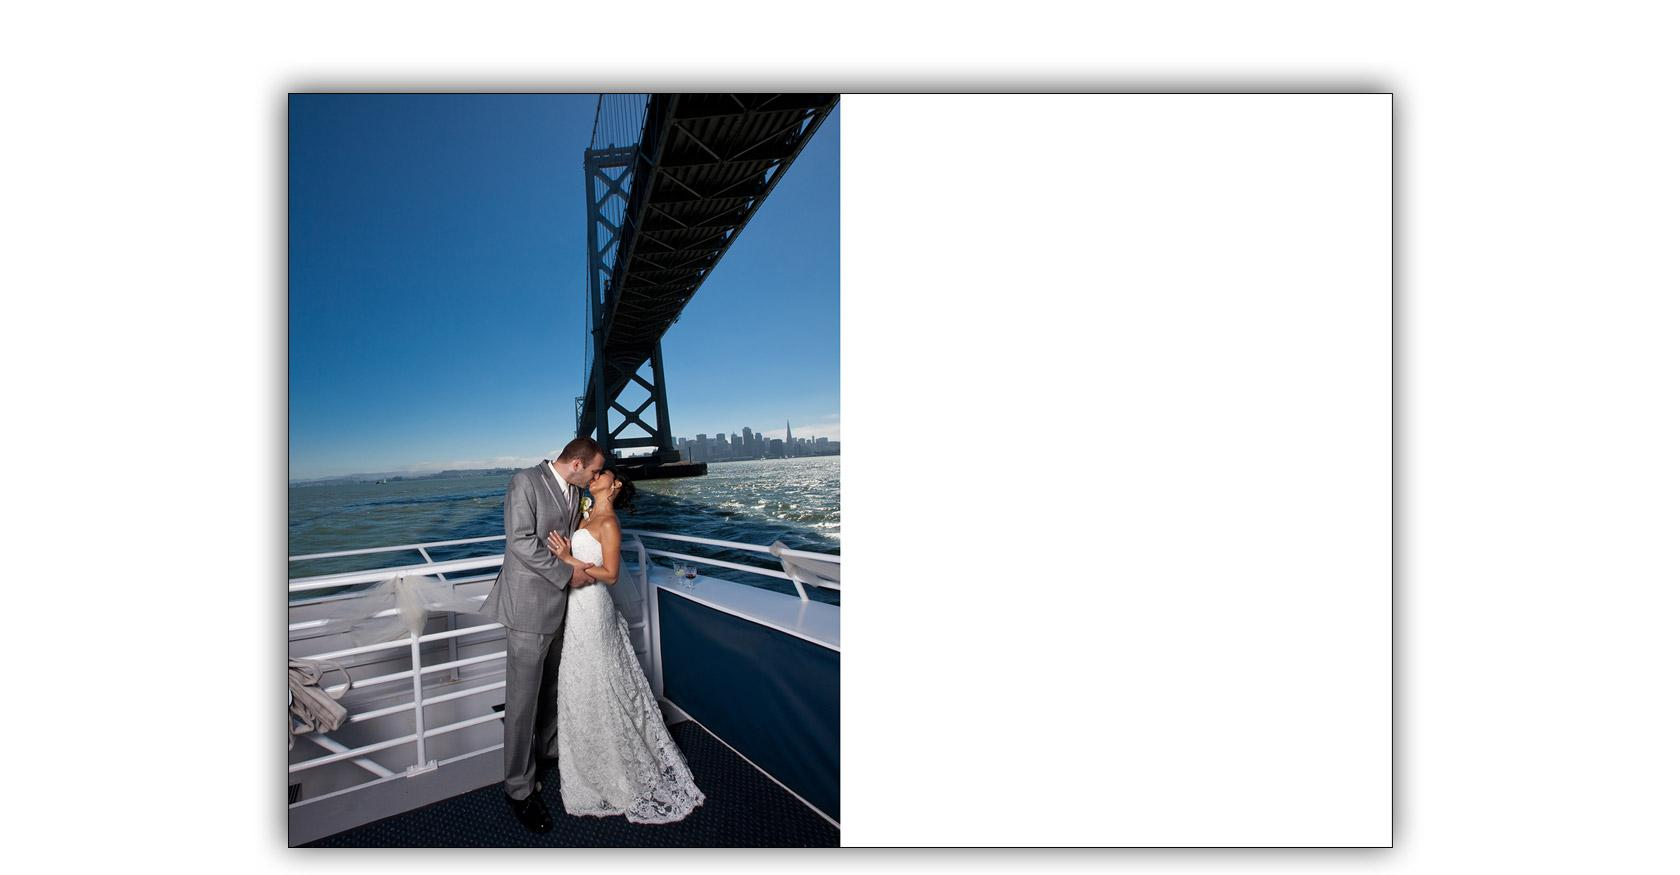 San Francisco Bay yacht boat wedding cruise Commodore Events Merlot photography album 17